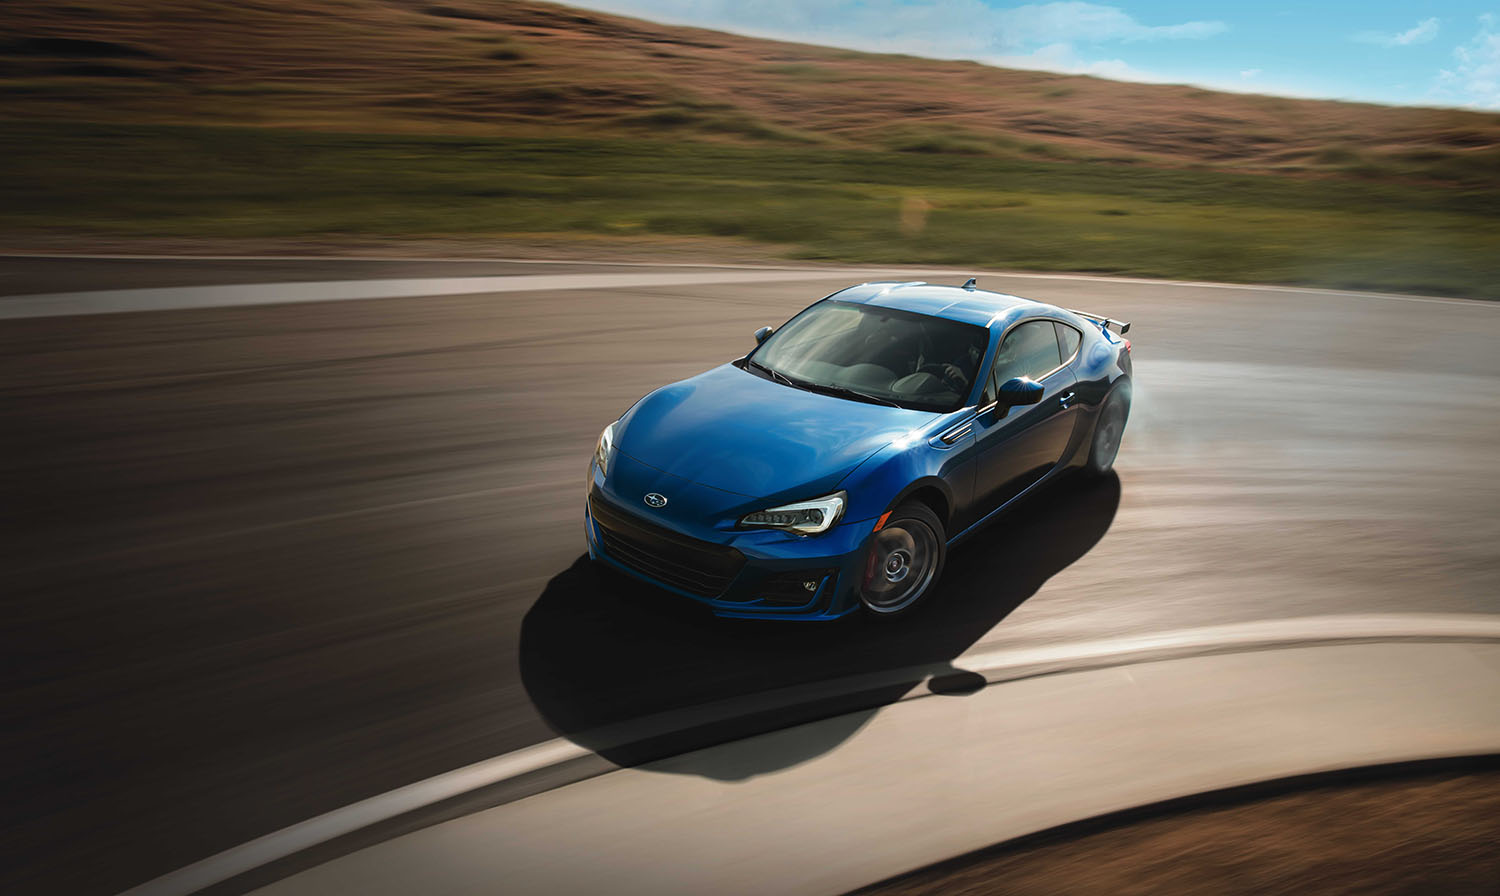 2018 Subaru Brz Launches Into The New Year With New Models